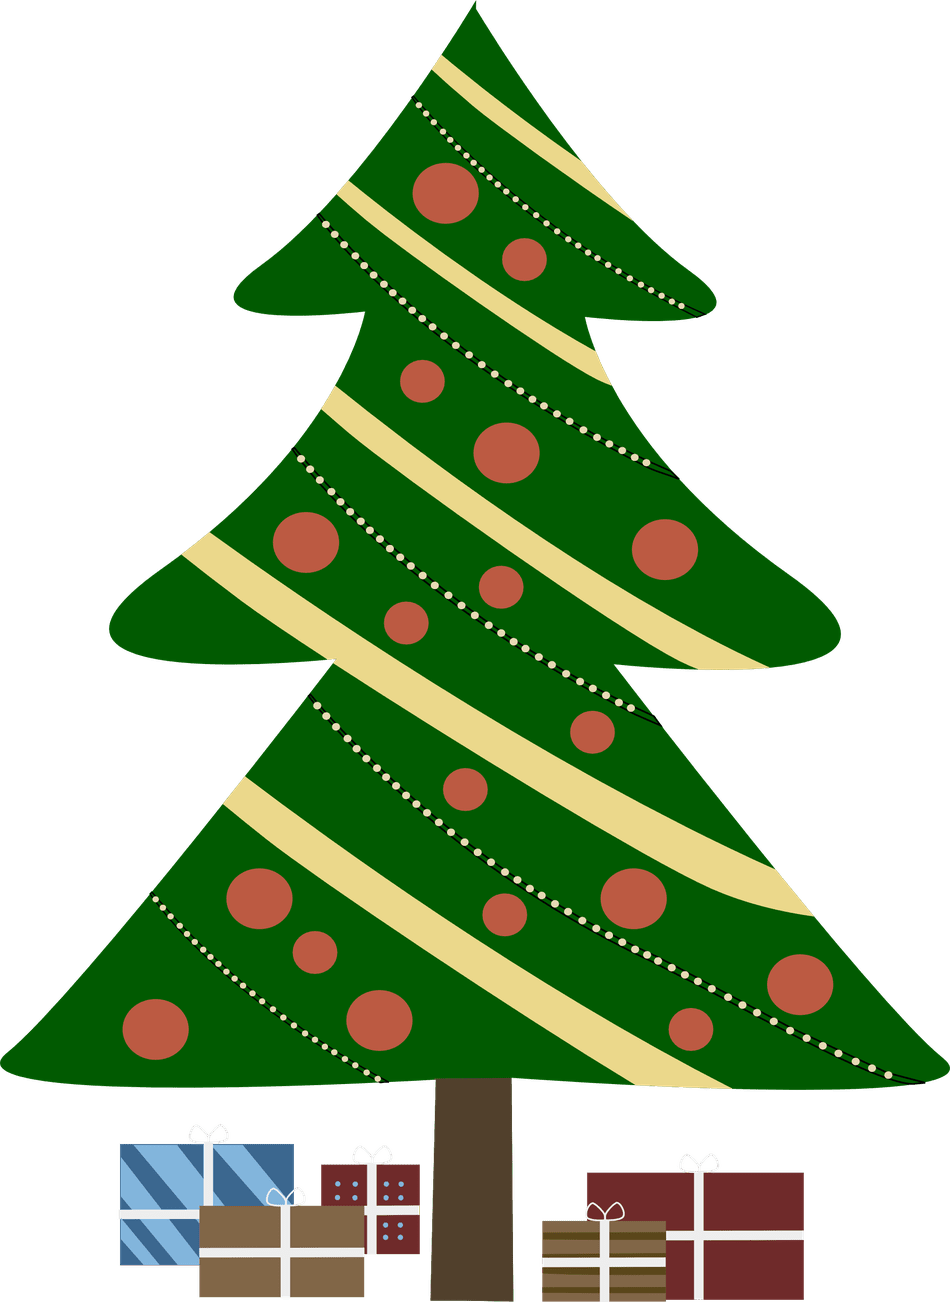 Fancy christmas tree clipart banner royalty free 297 Free Christmas Tree Clip Art Images banner royalty free